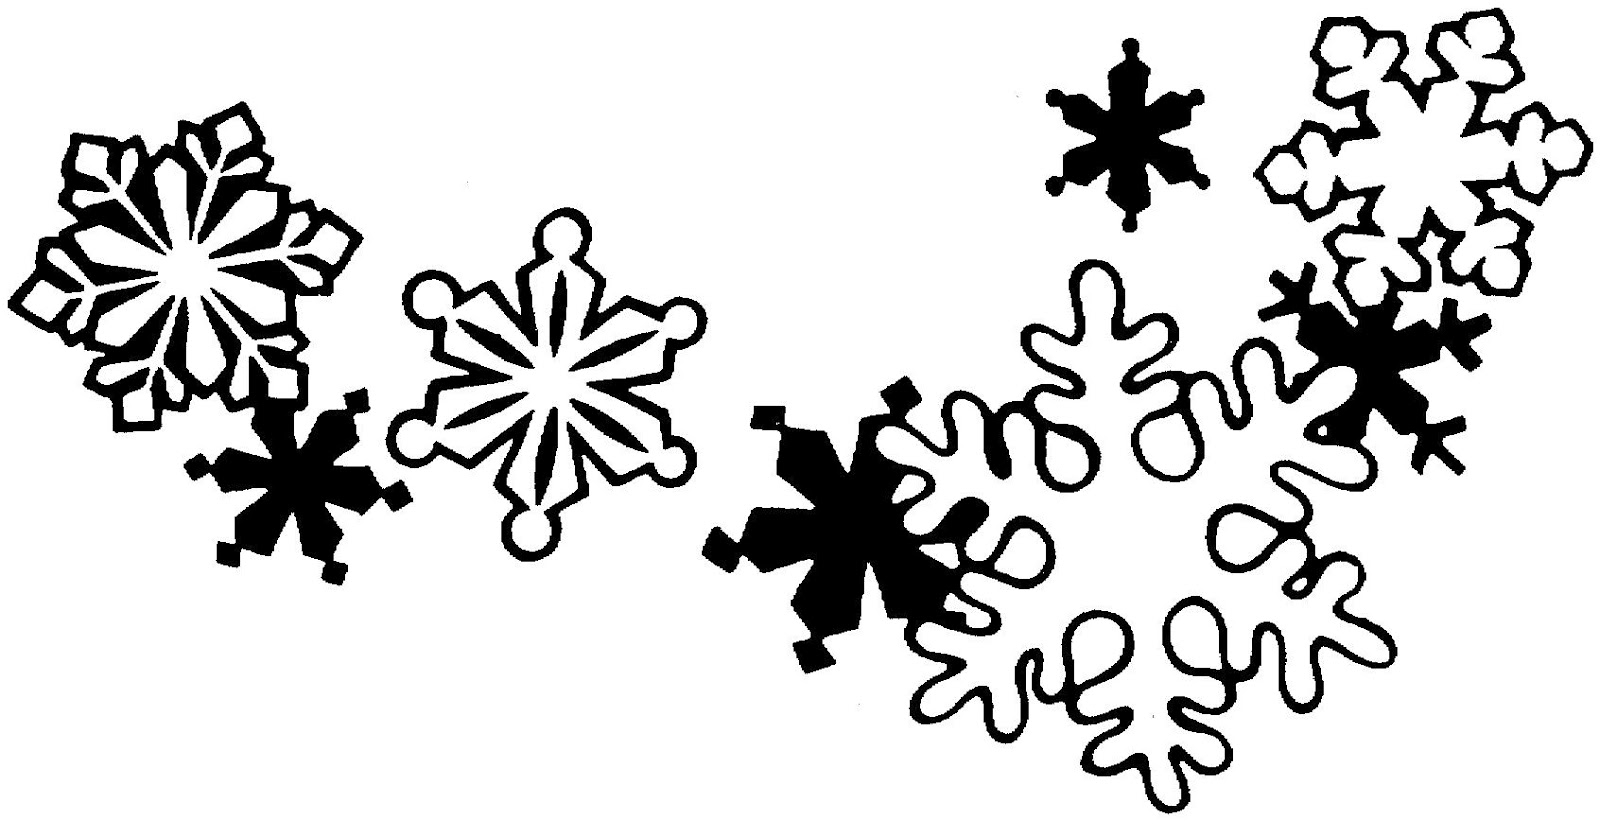 Snowflake Clipart Black And White Ornament Clipart Black And White